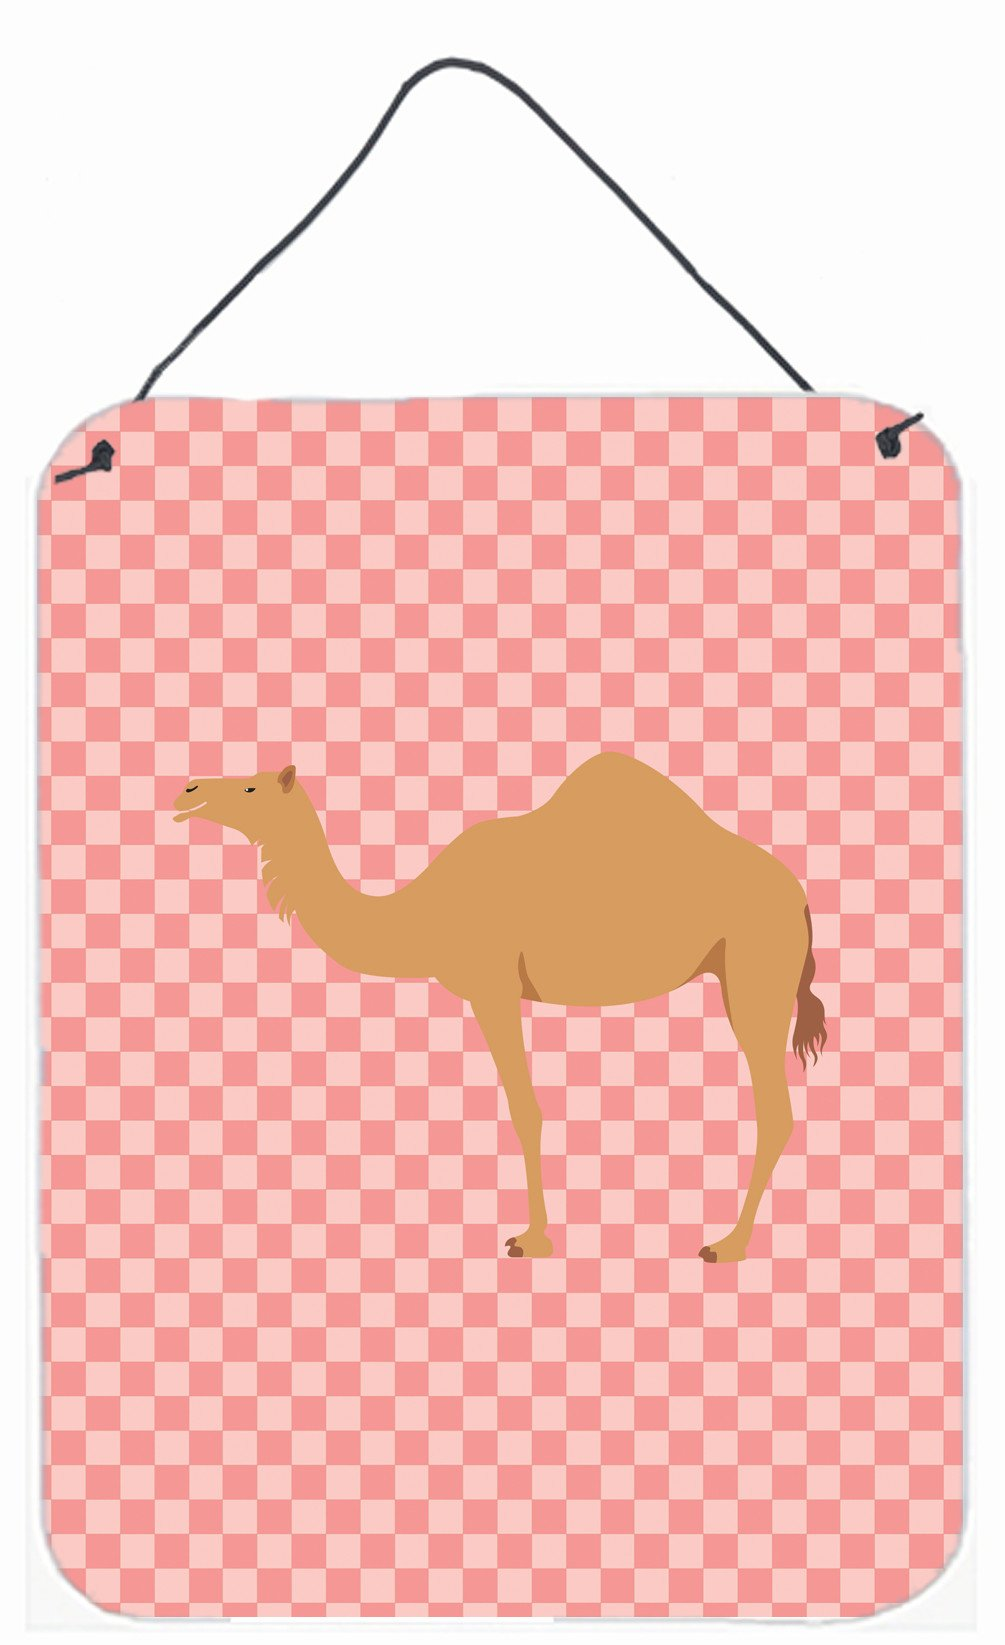 Arabian Camel Dromedary Pink Check Wall or Door Hanging Prints BB7817DS1216 by Caroline's Treasures